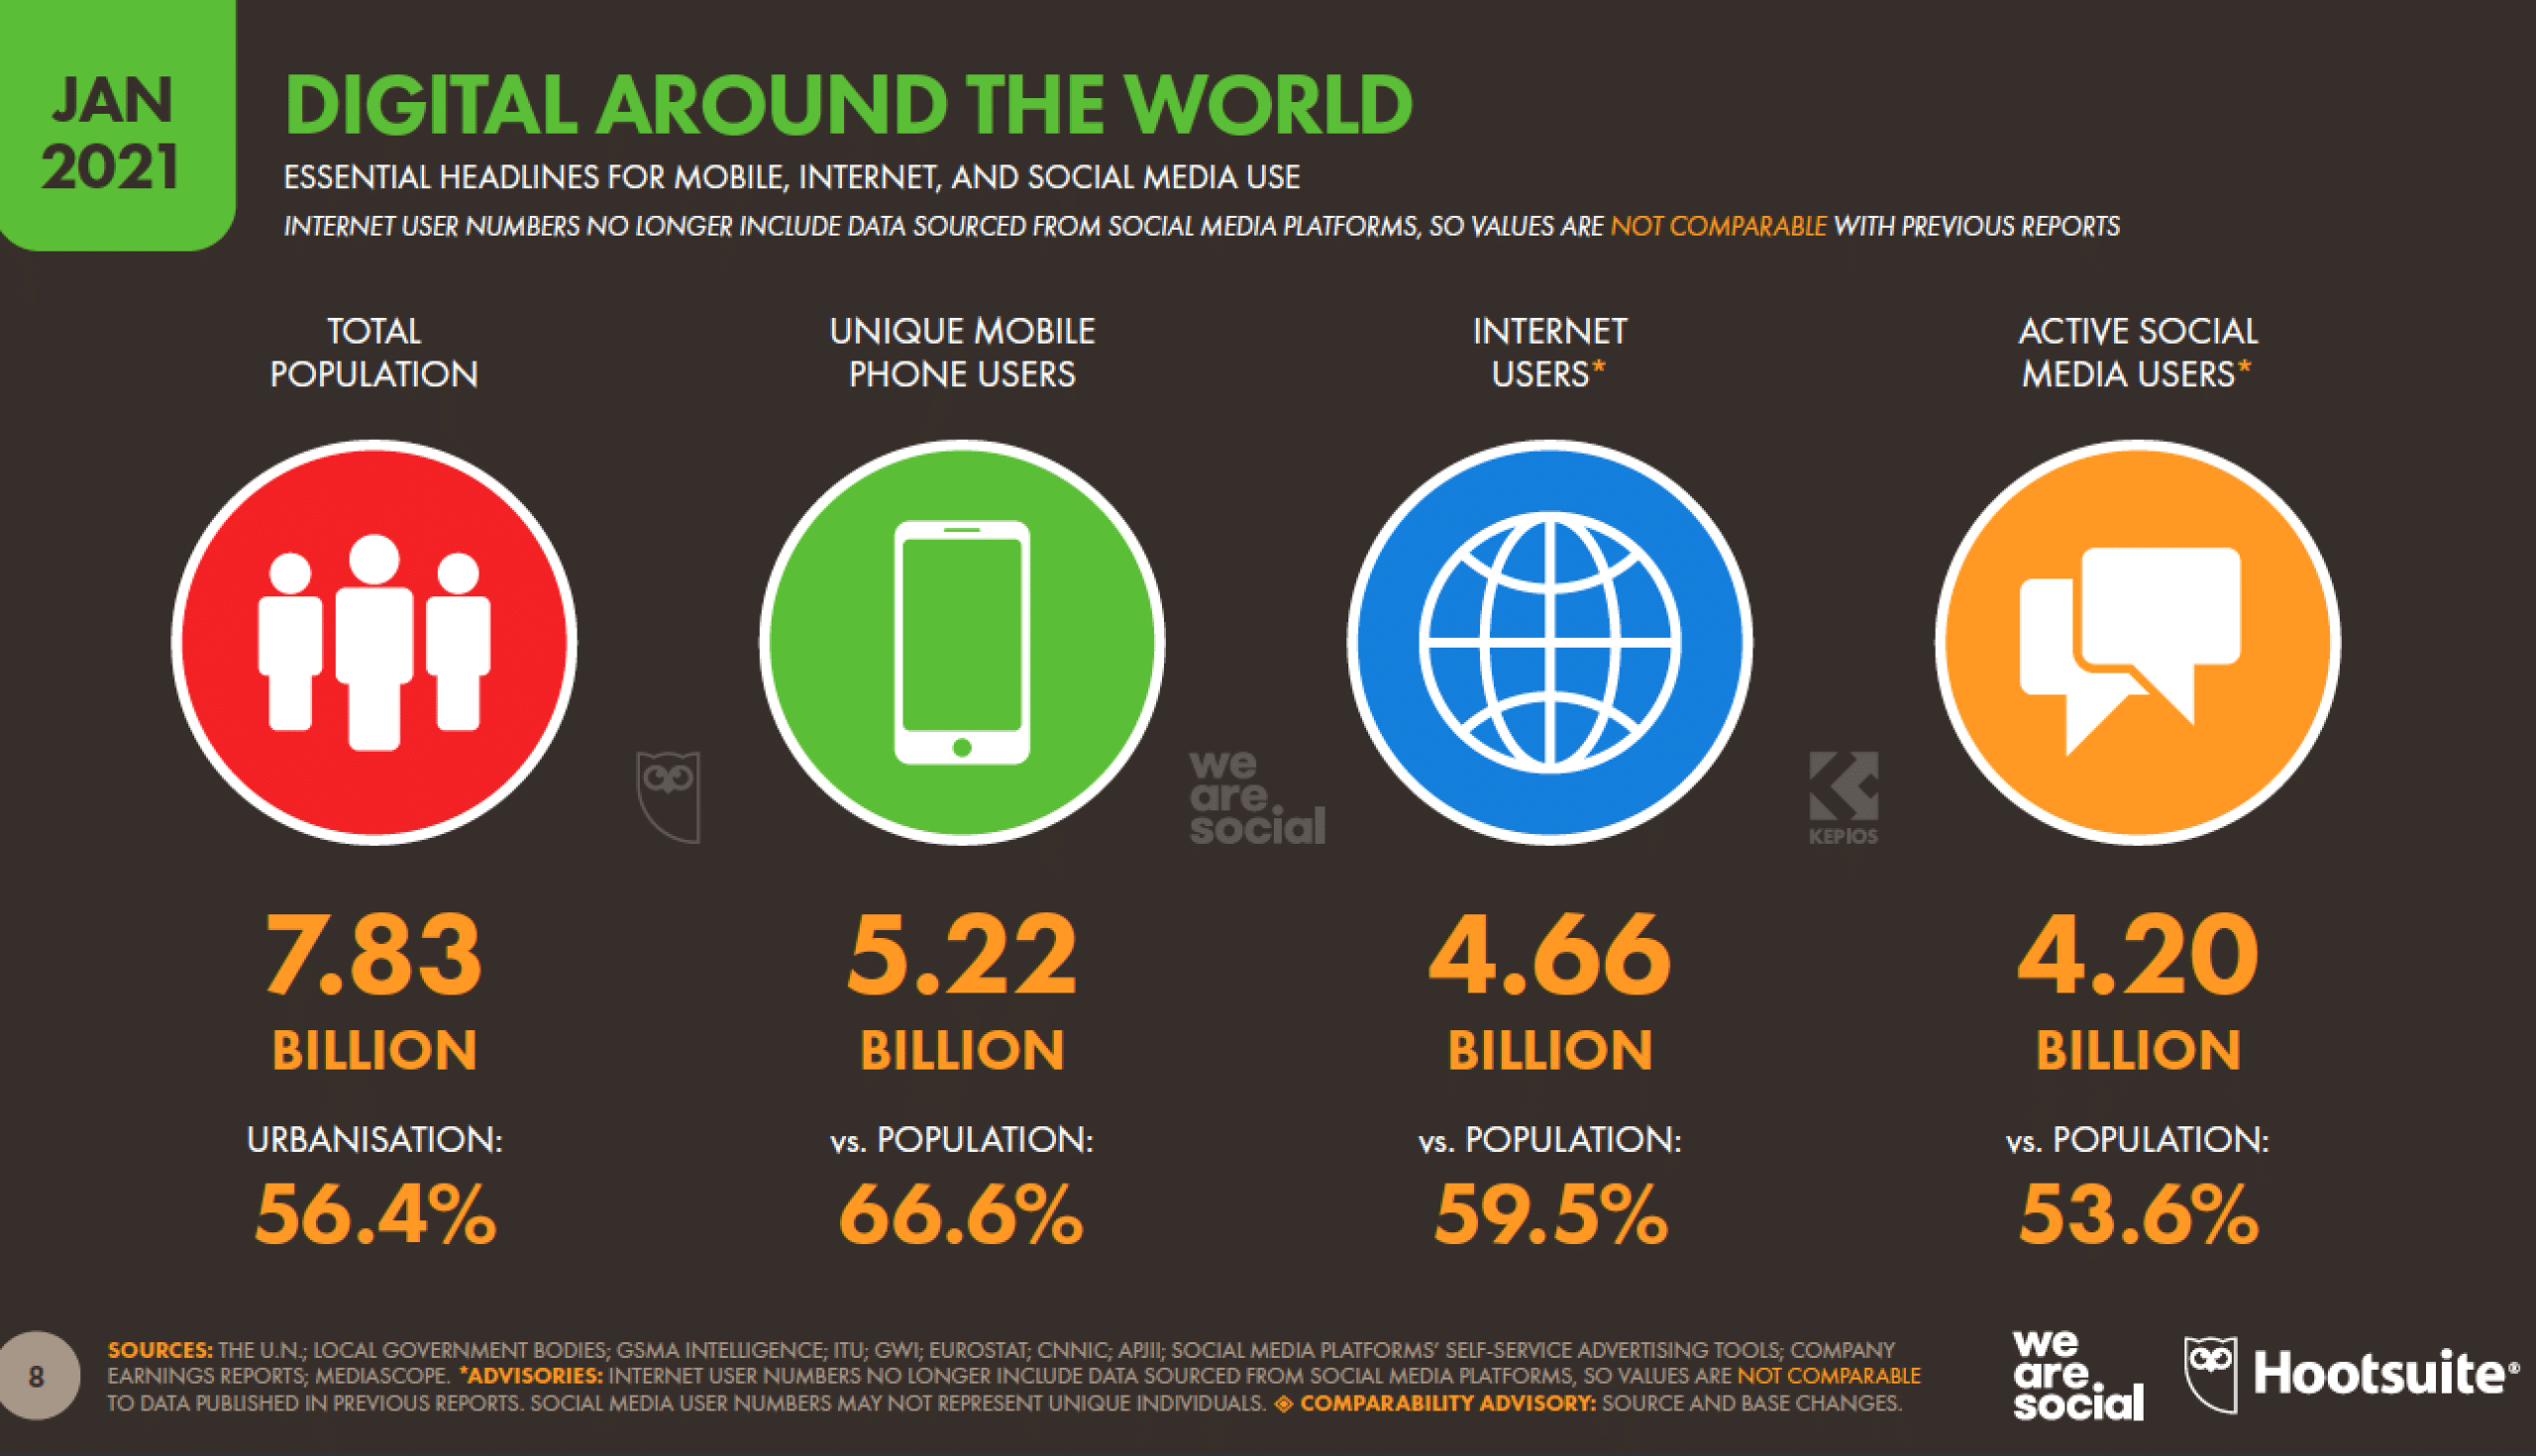 digital around the world mobile, internet and social media use